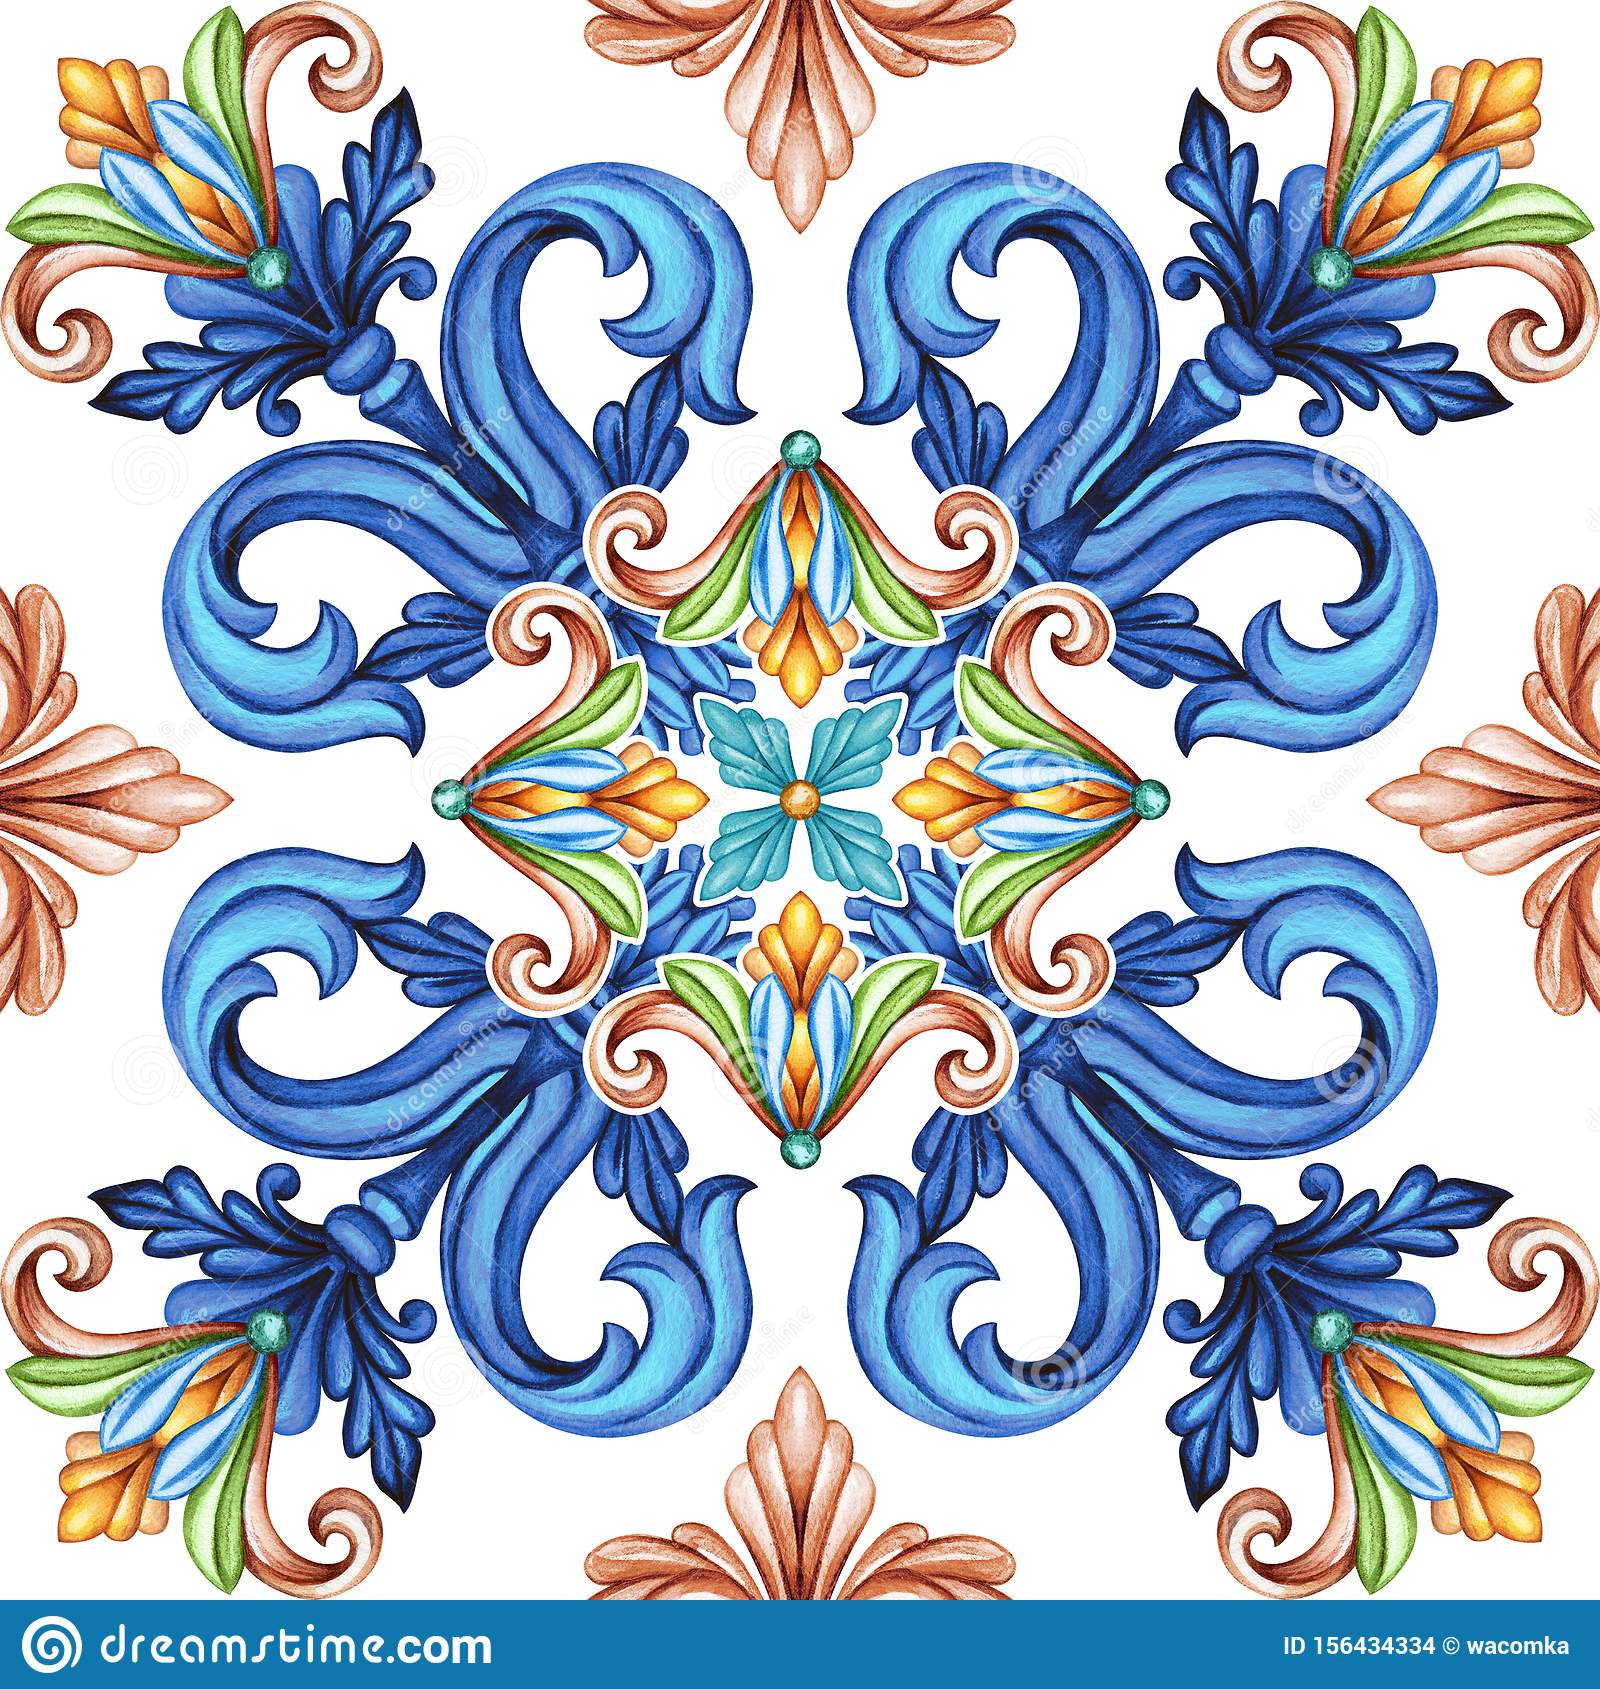 https www dreamstime com abstract seamless pattern classic design antique mosaic ornament medieval acanthus background mosaic ceramic tile abstract image156434334